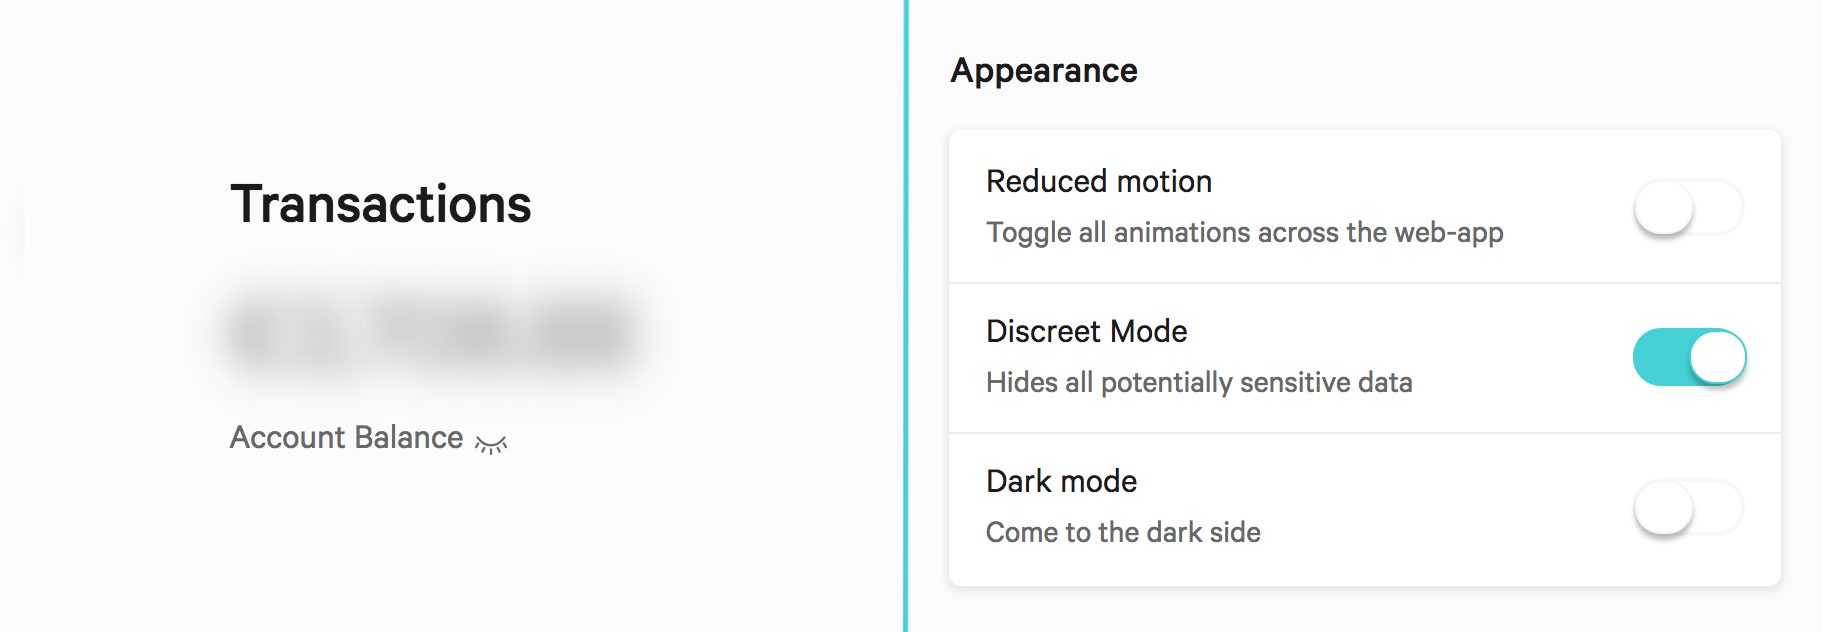 Ways to toggle the discreet mode in the N26 webapp